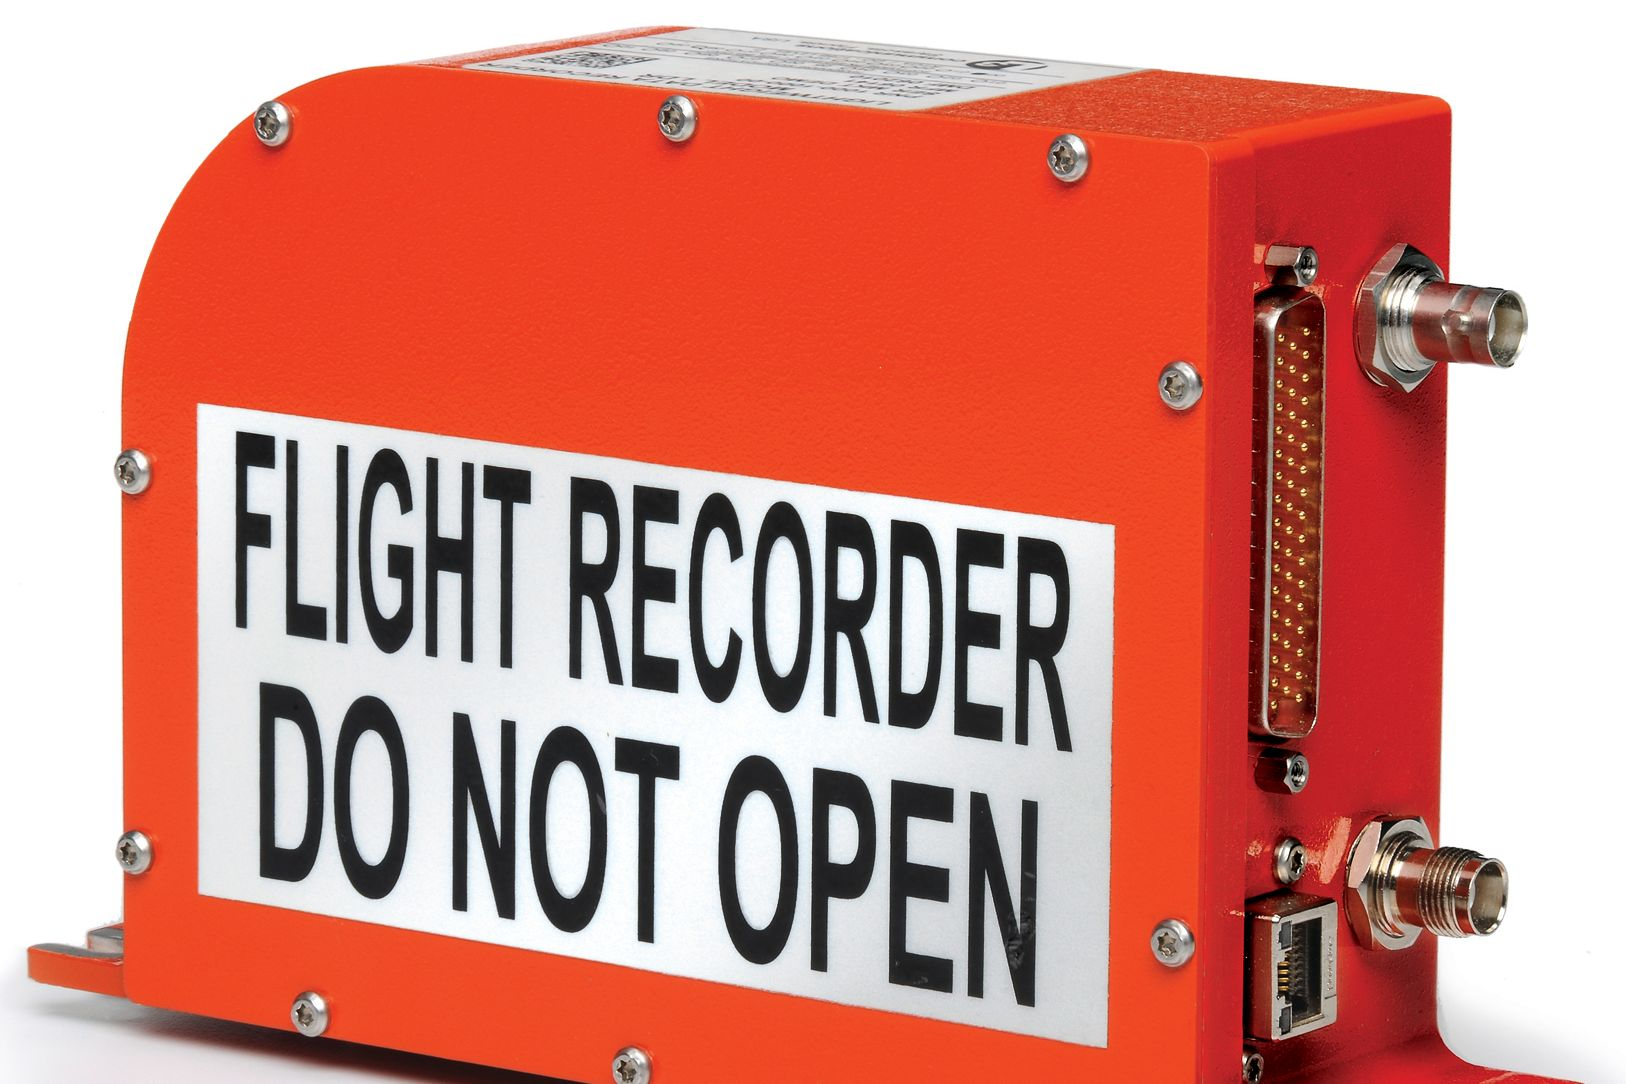 Flight recorder iqny1c